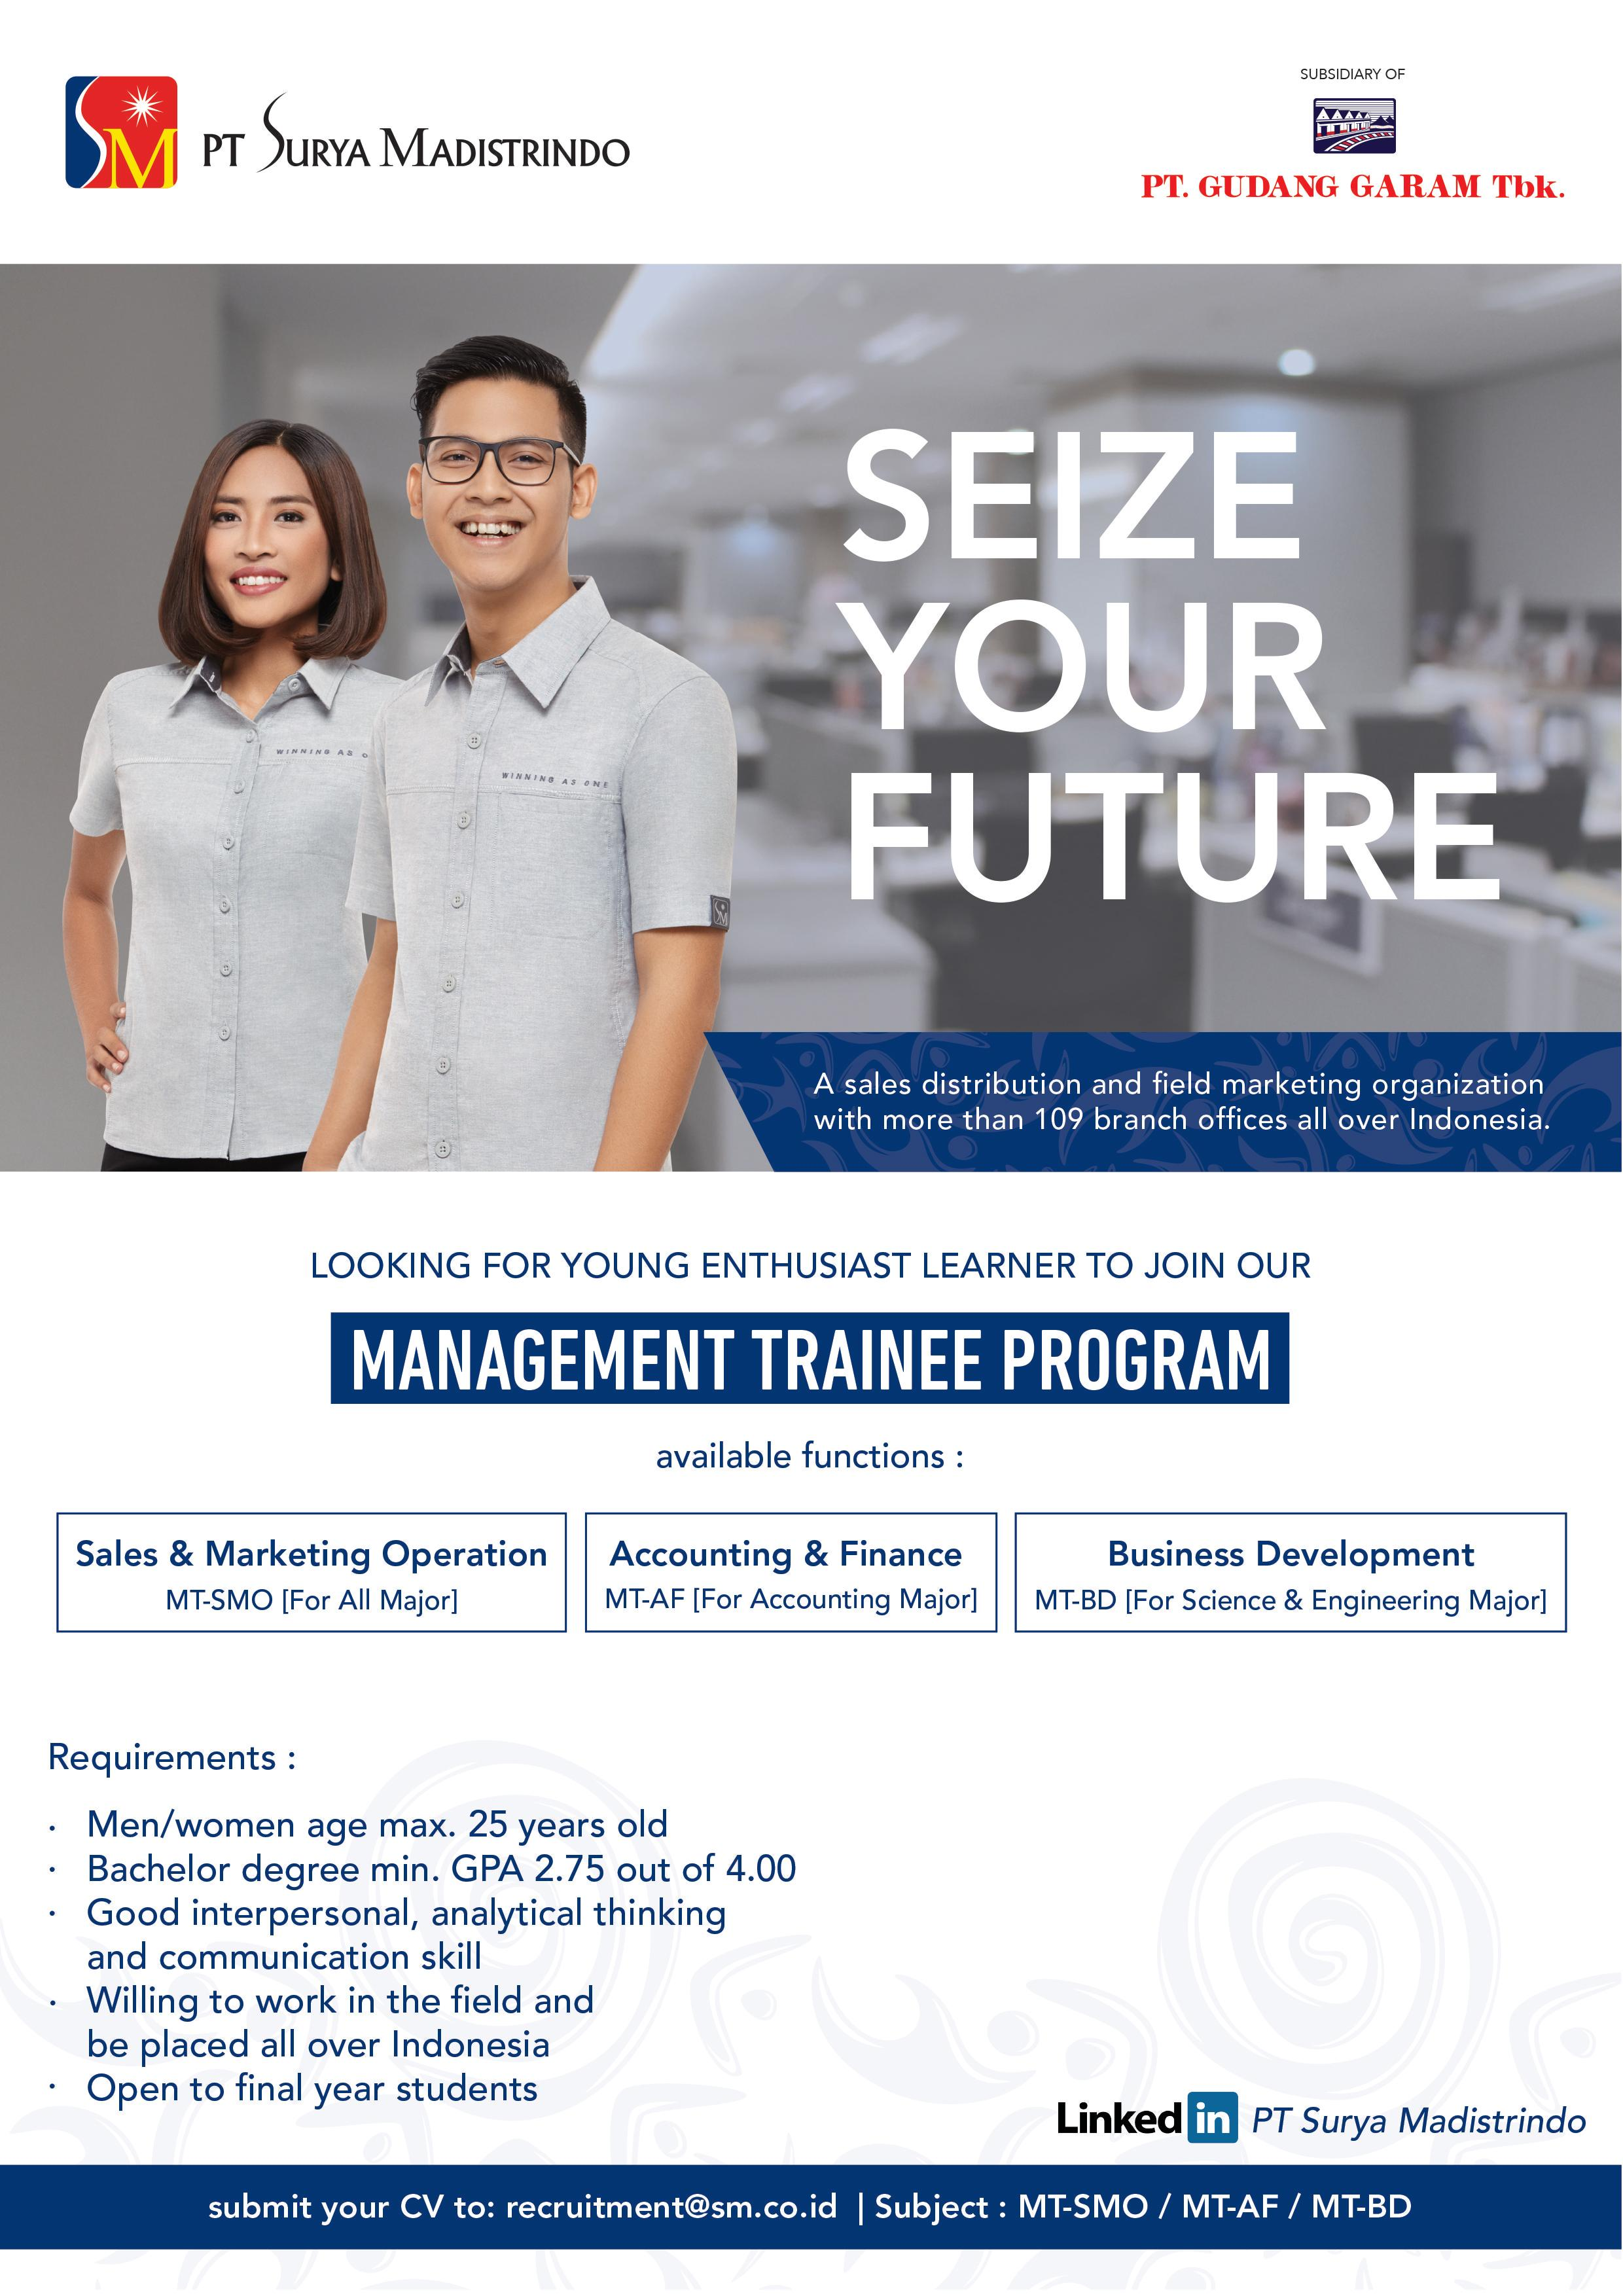 Management Trainee Program dari PT. Surya Madistrindo